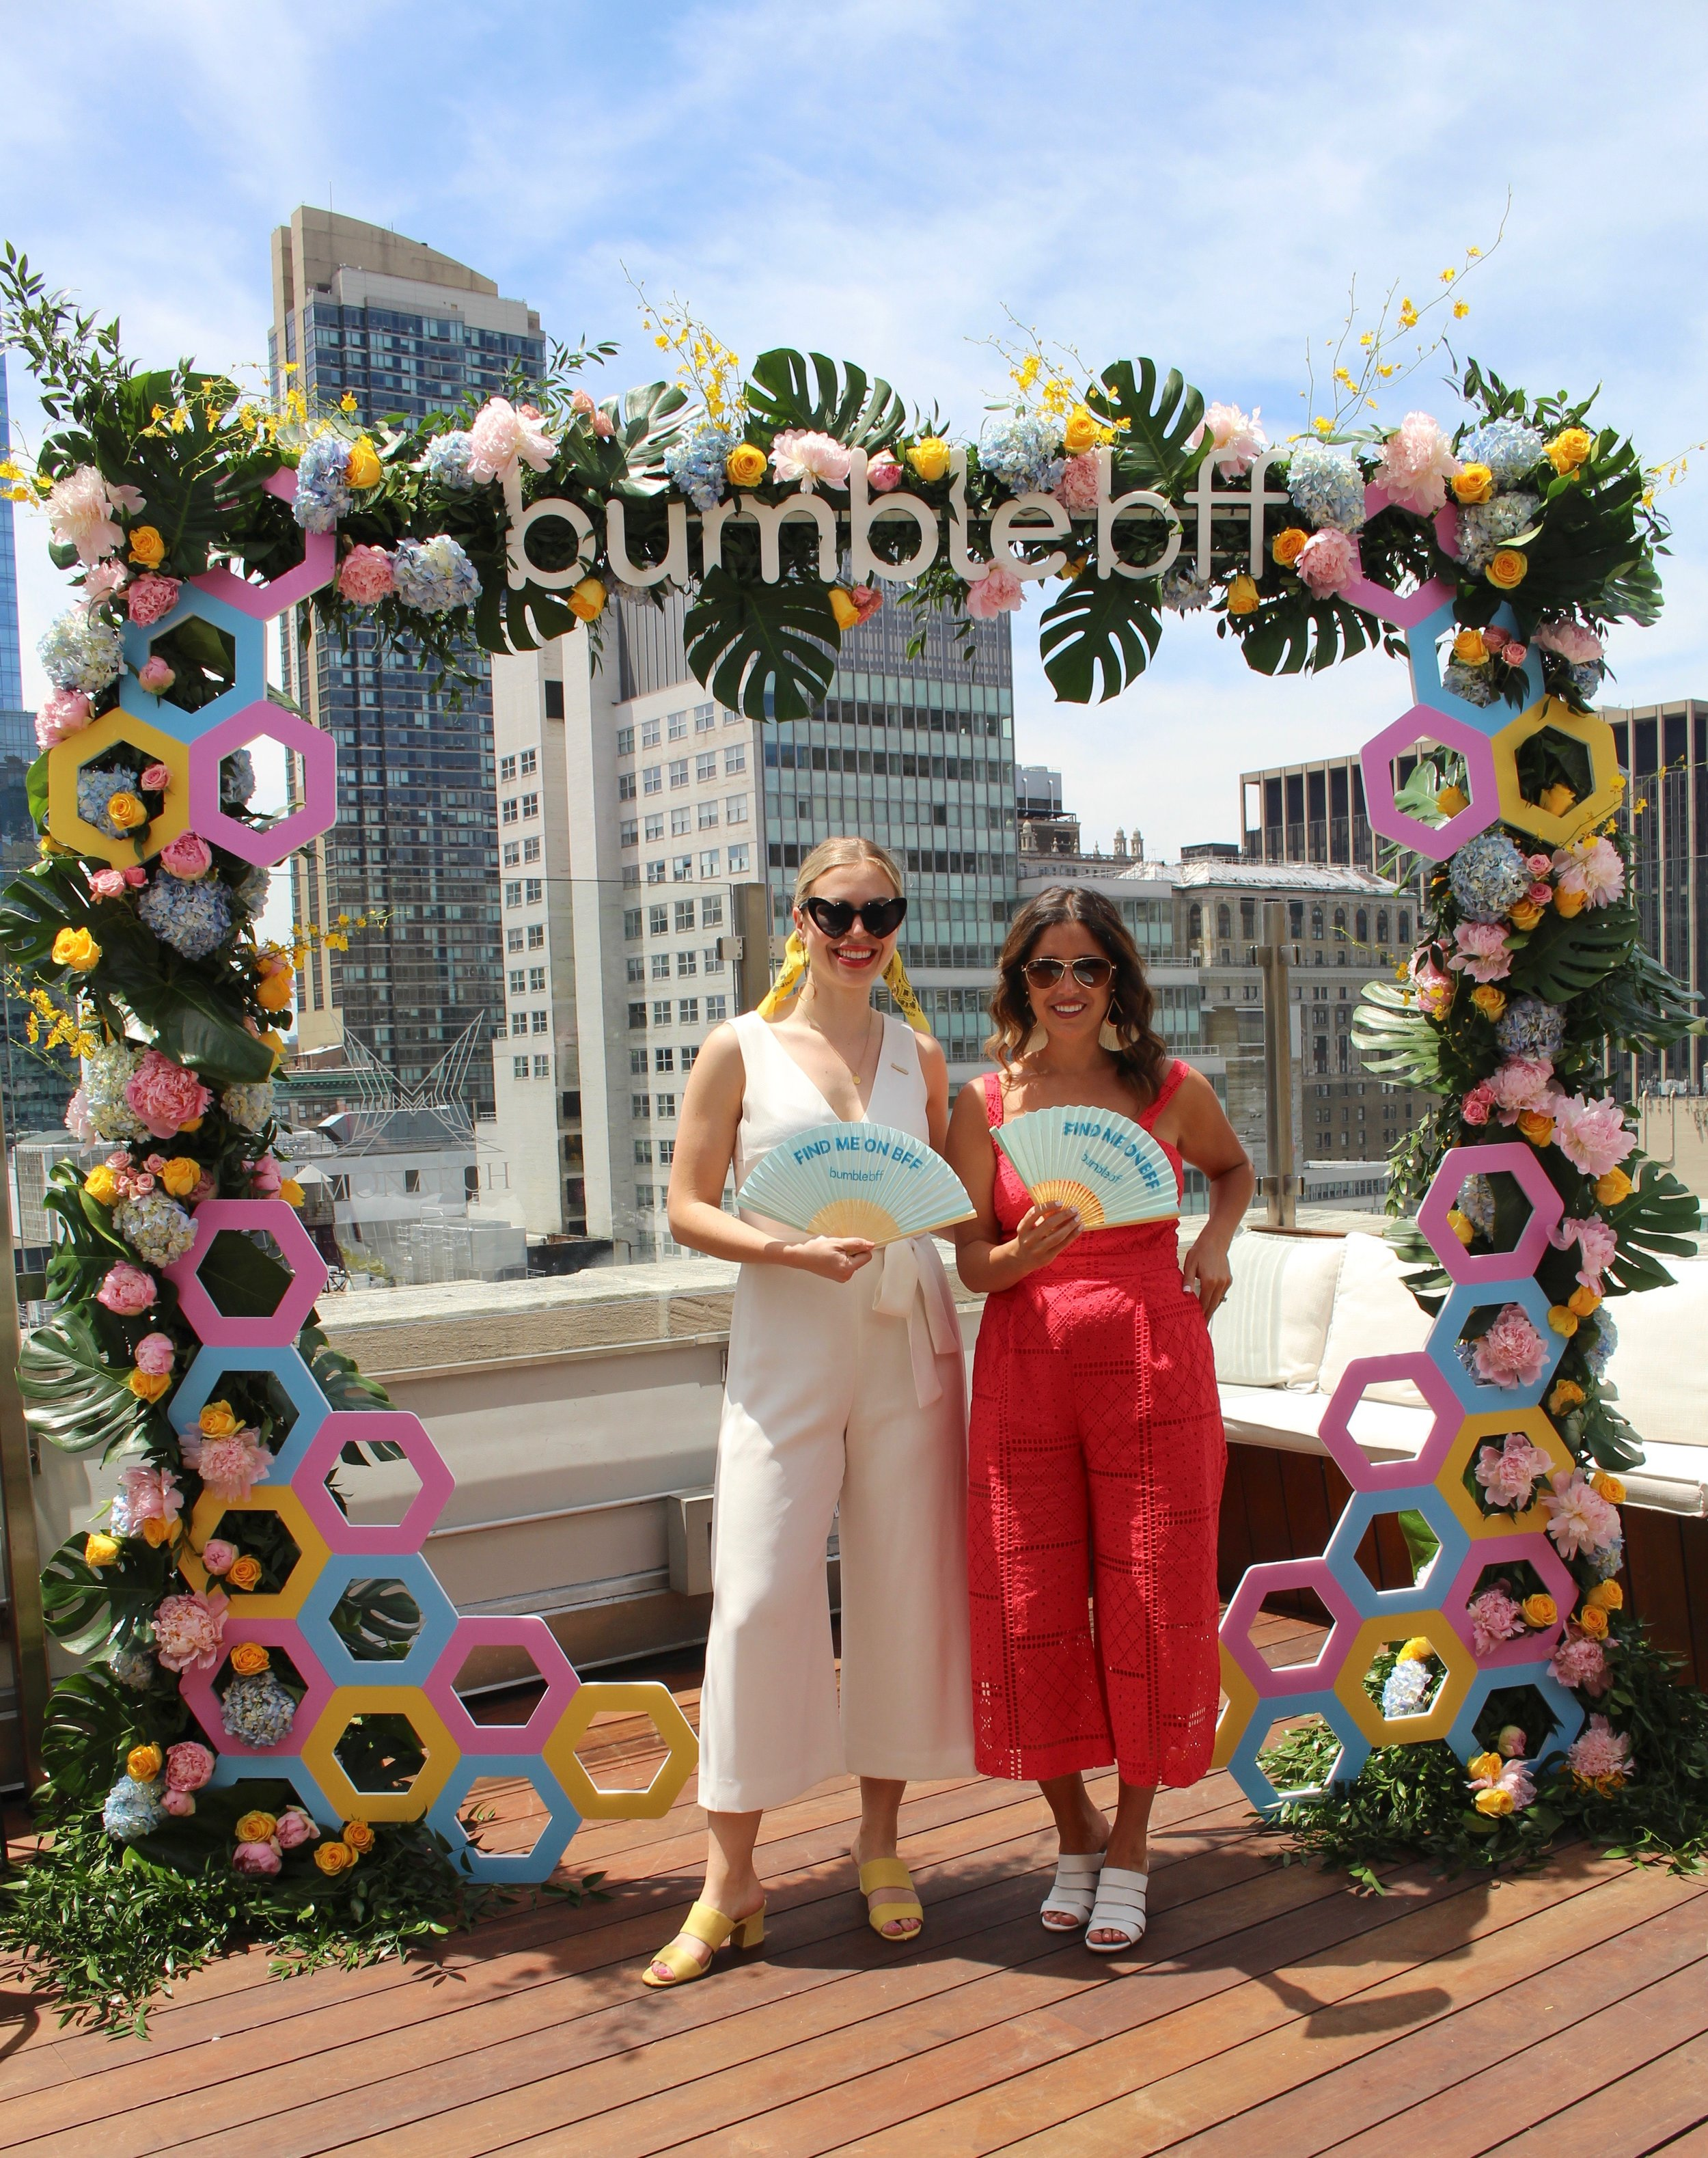 Bumble BFF Flower Arch